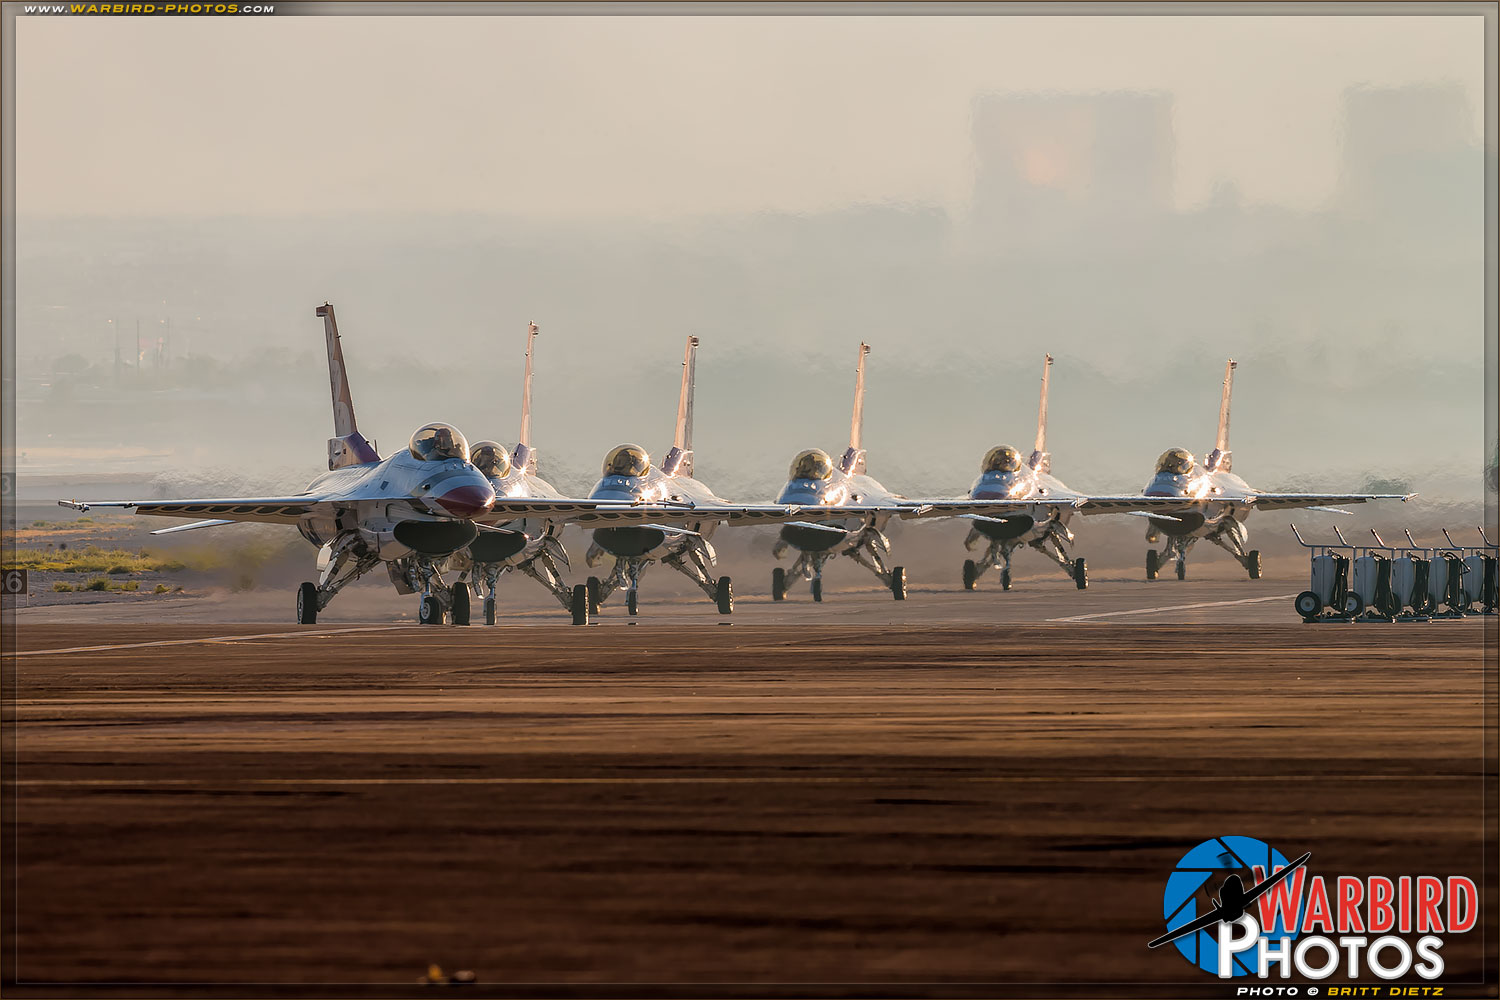 Nellis AFB Airshow 2016 - November 12-13, 2016